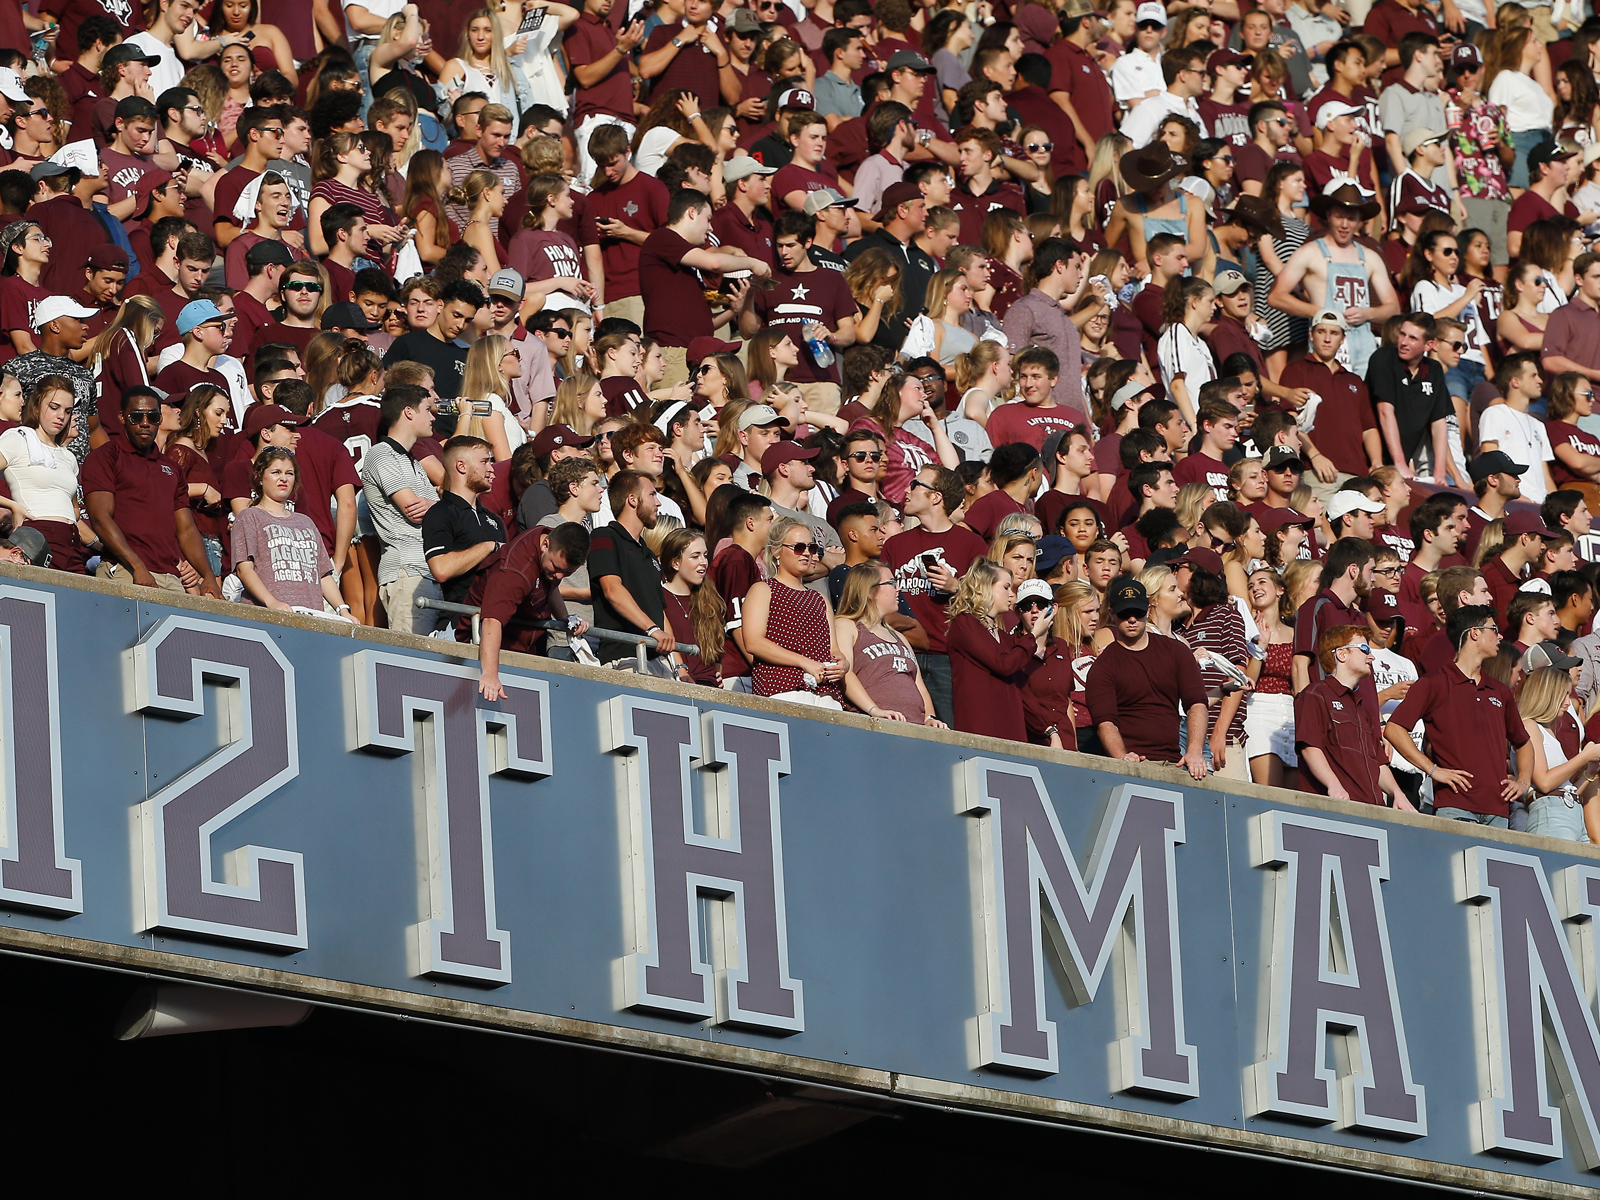 Texas A&M Becomes First SEC Football Team to Allow Stadium-wide Beer and Wine Sales